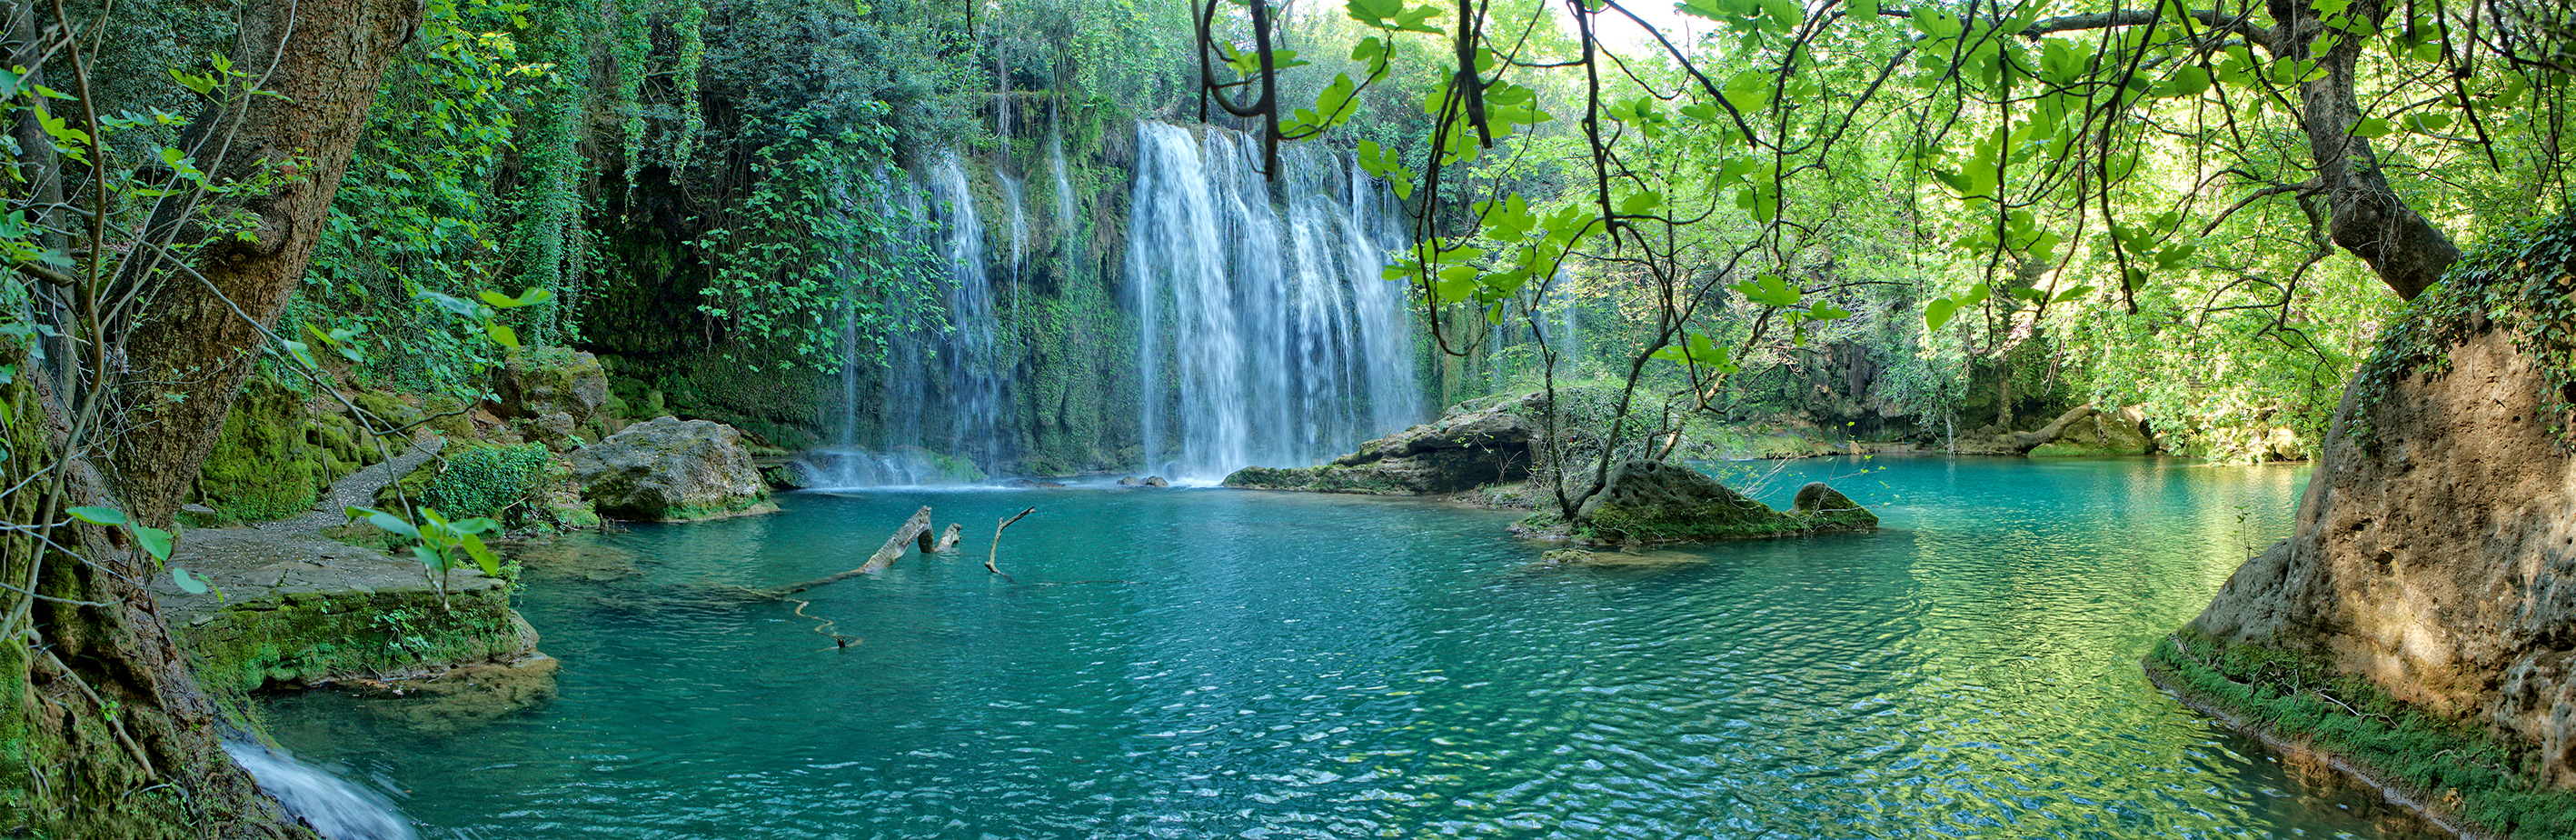 Düden Waterfalls, Turkey